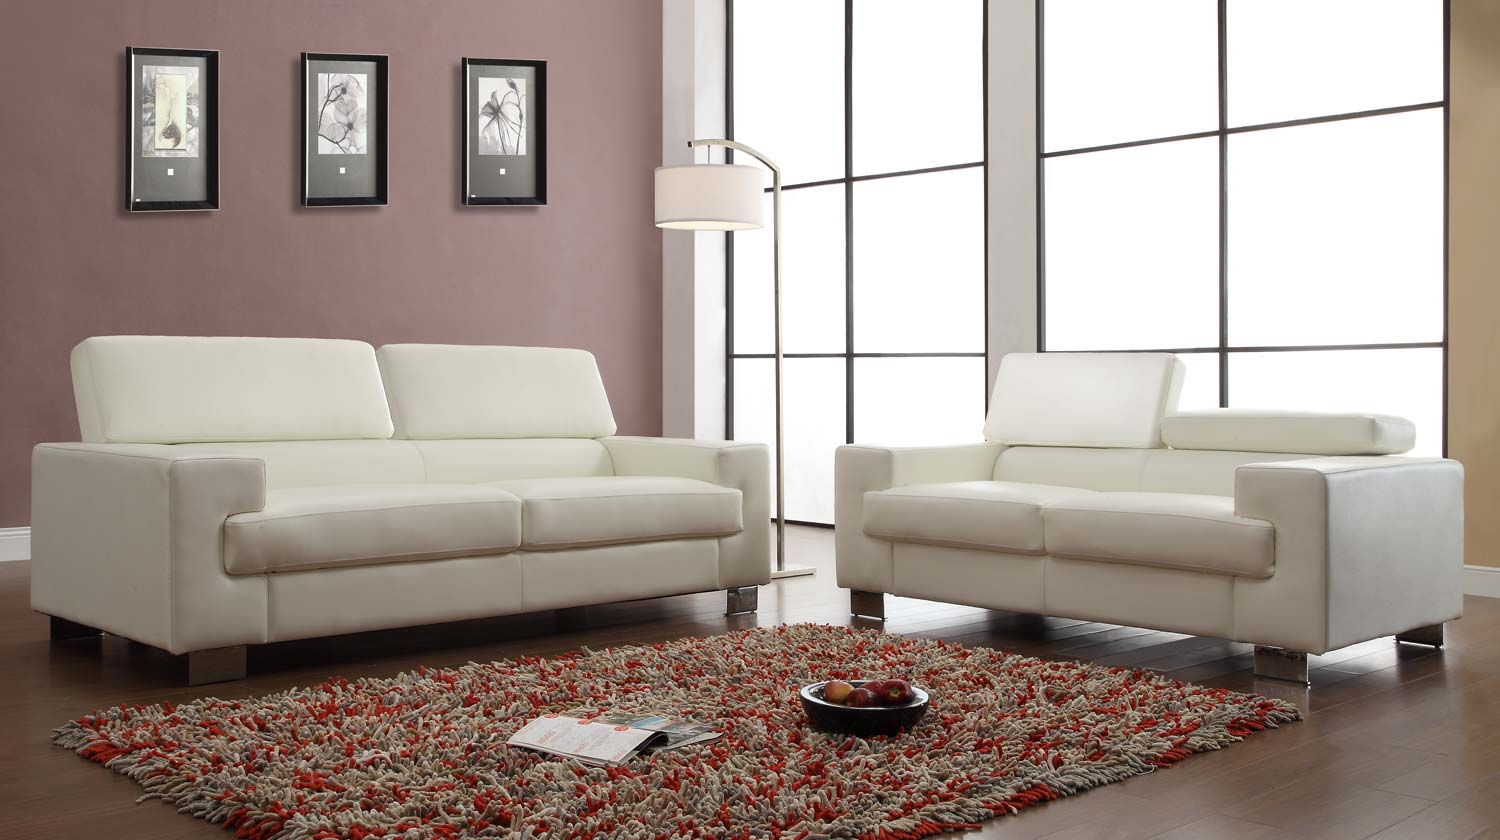 Homelegance Vernon Sofa Set - White - Bonded Leather